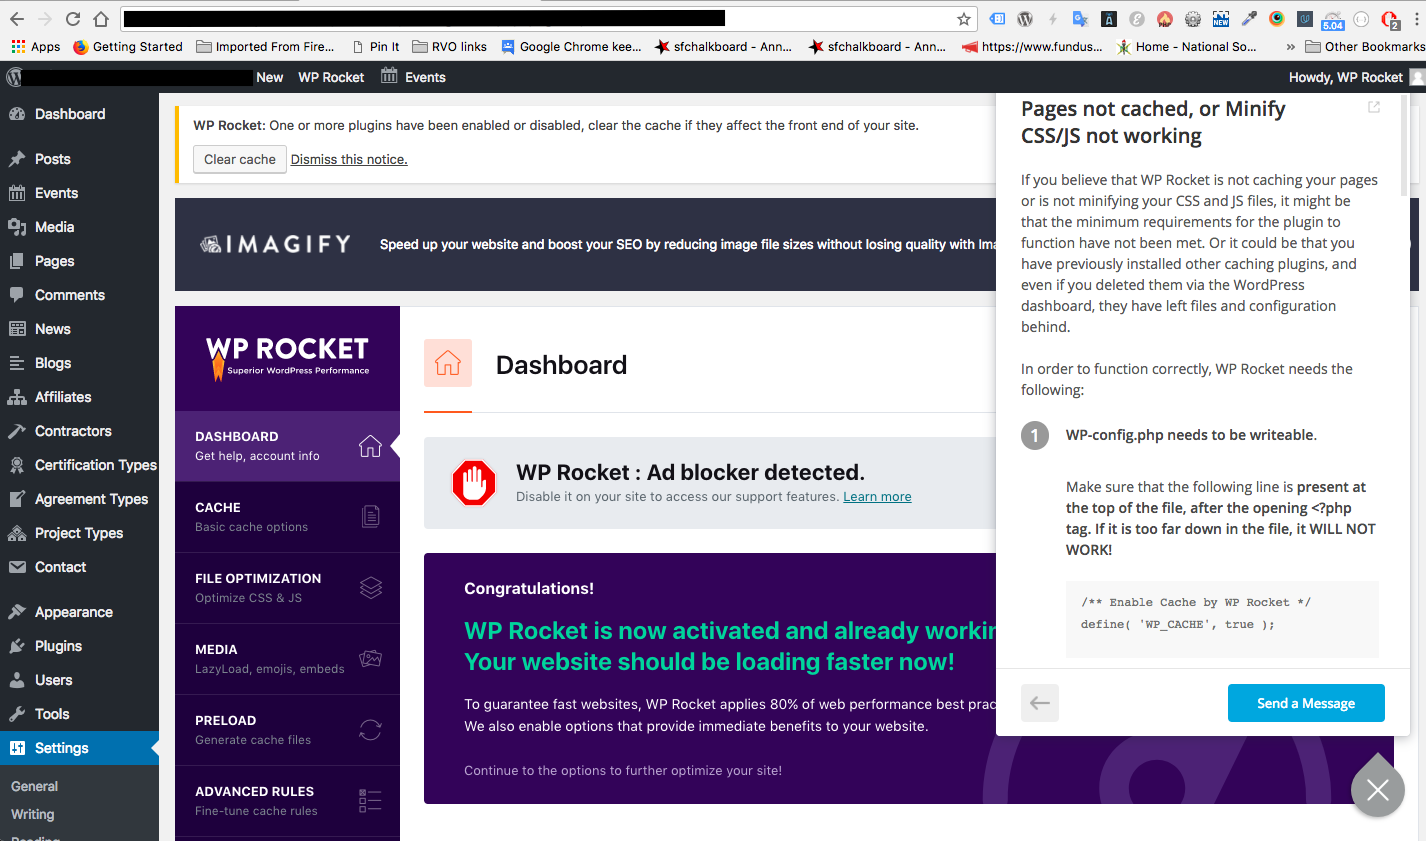 Helpscout Beacon 2.0 3.0 - serve beacon js/css from wp-rocket server to bypass